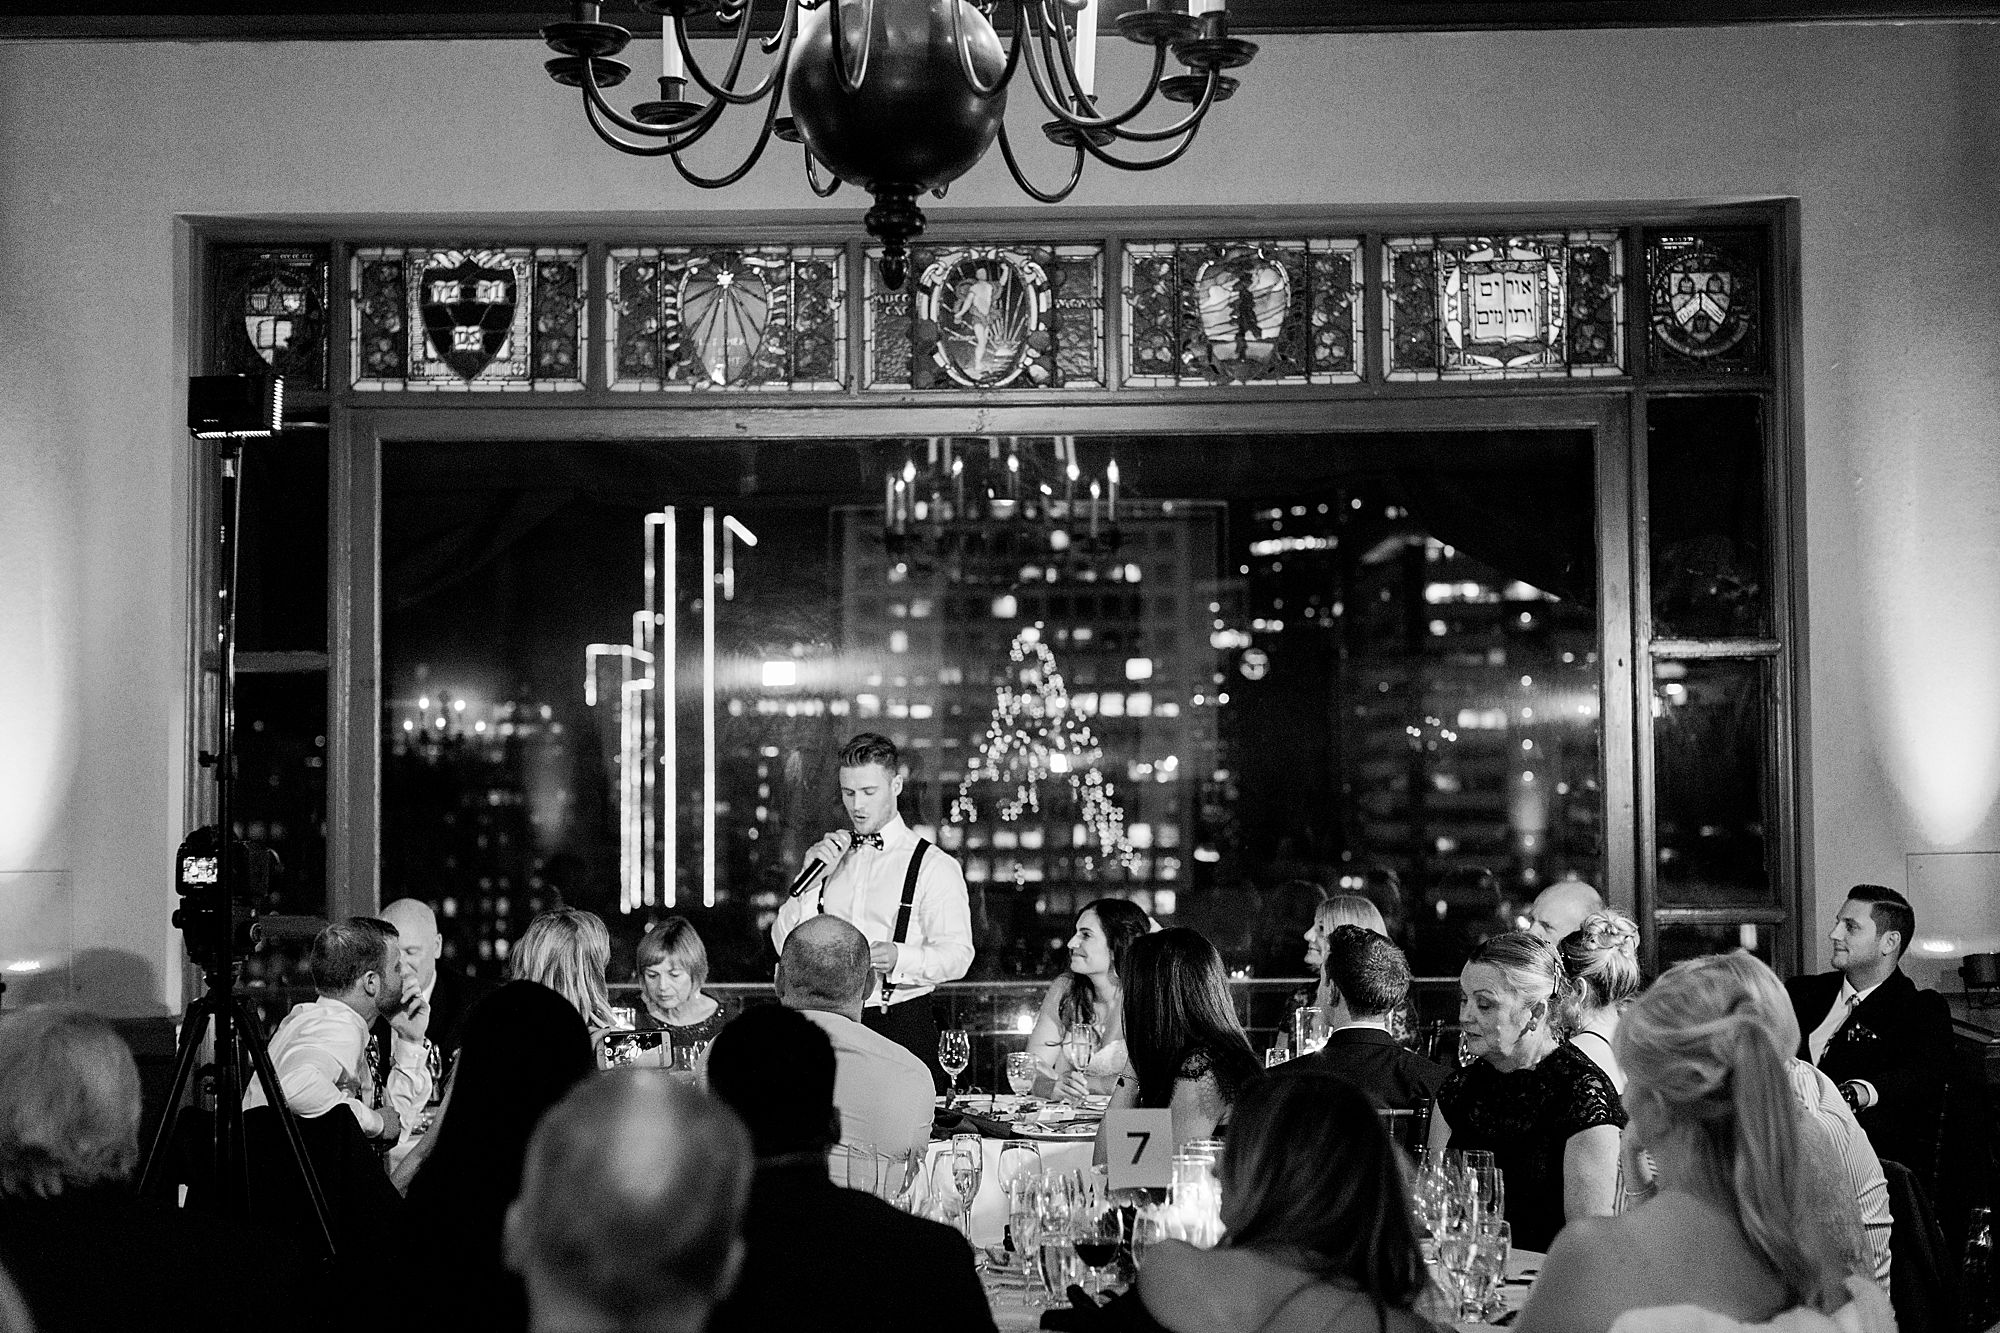 University Club Wedding in San Francisco - Cortney and Jon - San Francisco Wedding - Ashley Baumgartner - SF Wedding Photographer_0108.jpg